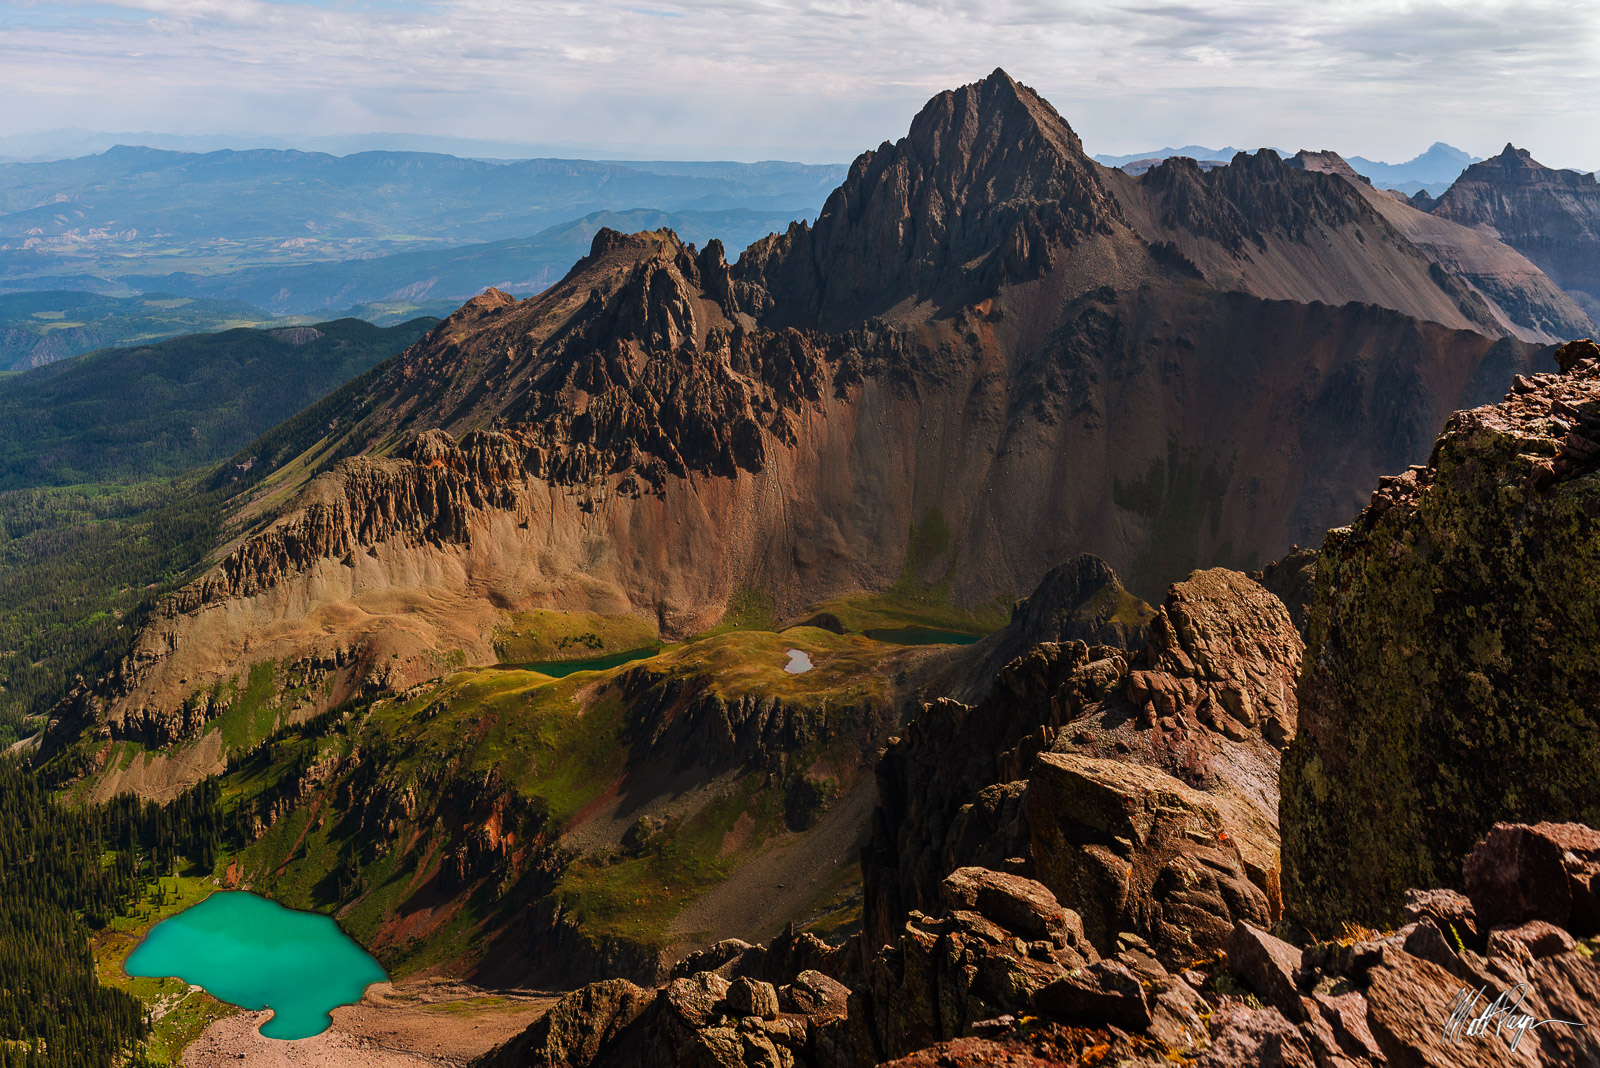 13er, 14er, Blue Lakes, Colorado, Dallas Peak, Landscape, Mount Sneffels, Mountains, San Juan Mountains, unique, photo